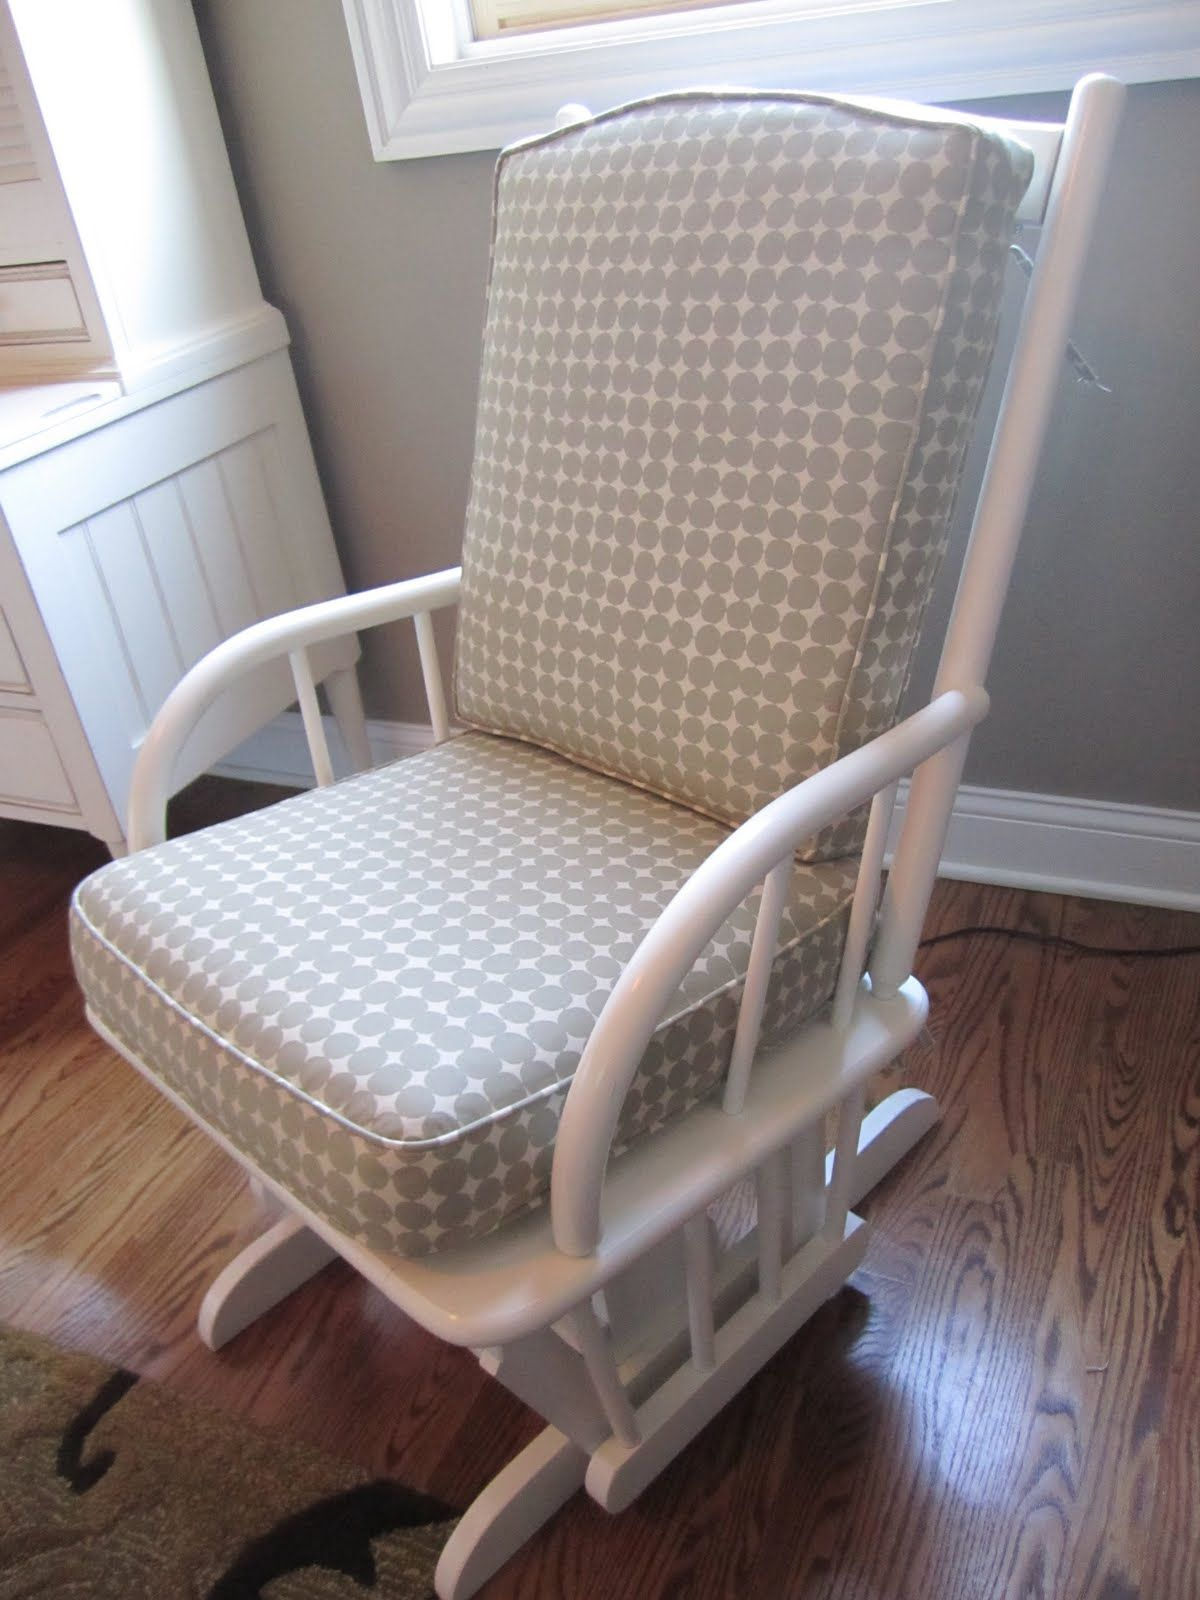 Stellas Big Girl Room Reupholstery Project